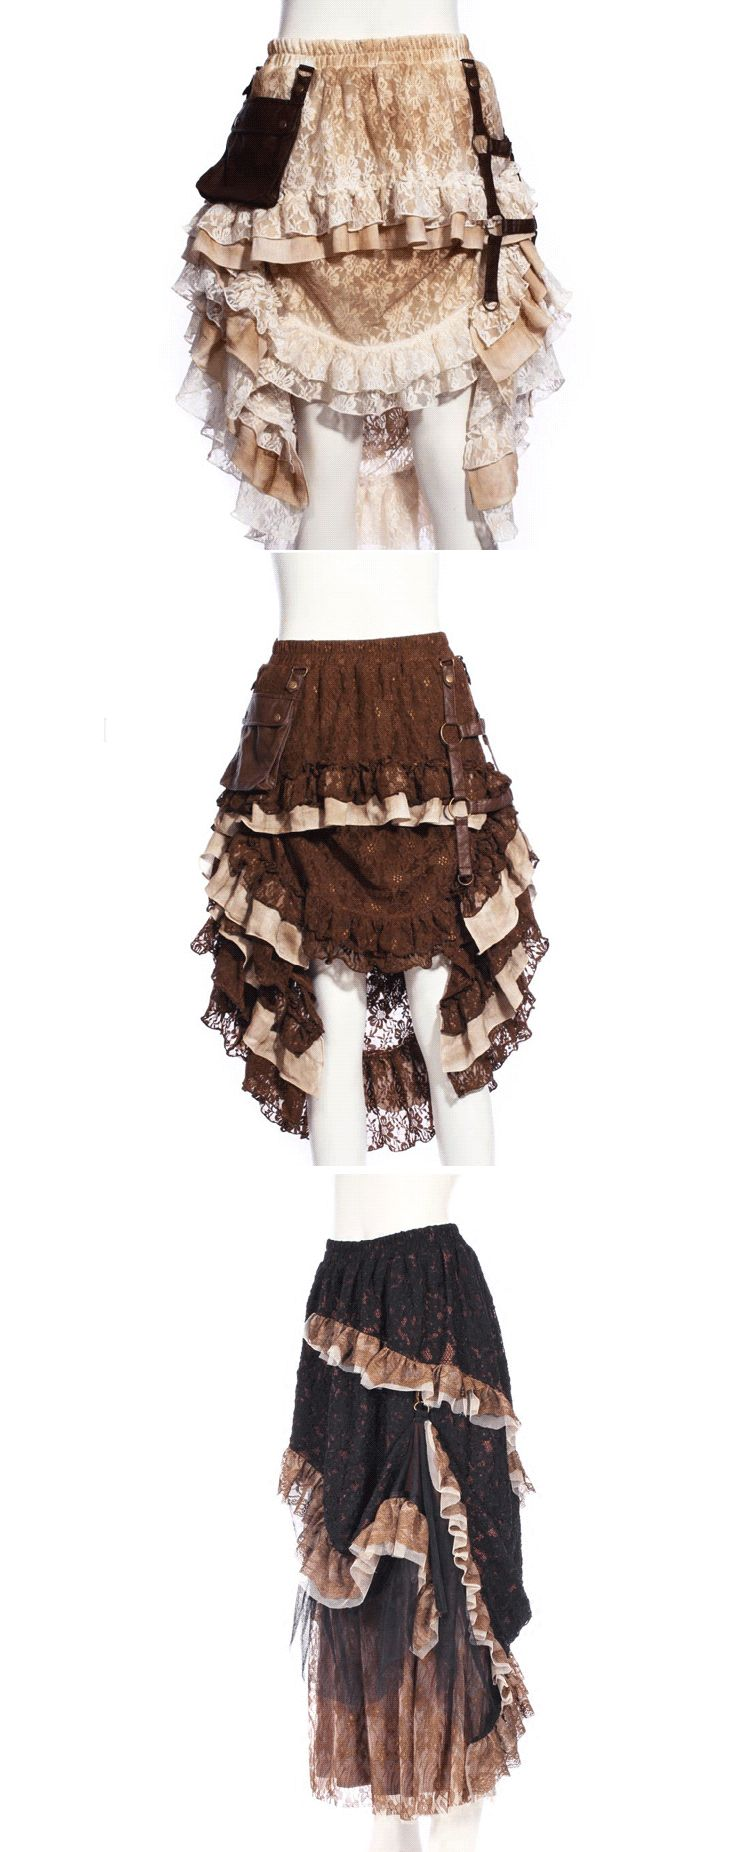 Shop steampunk Victorian skirts at RebelsMarket.